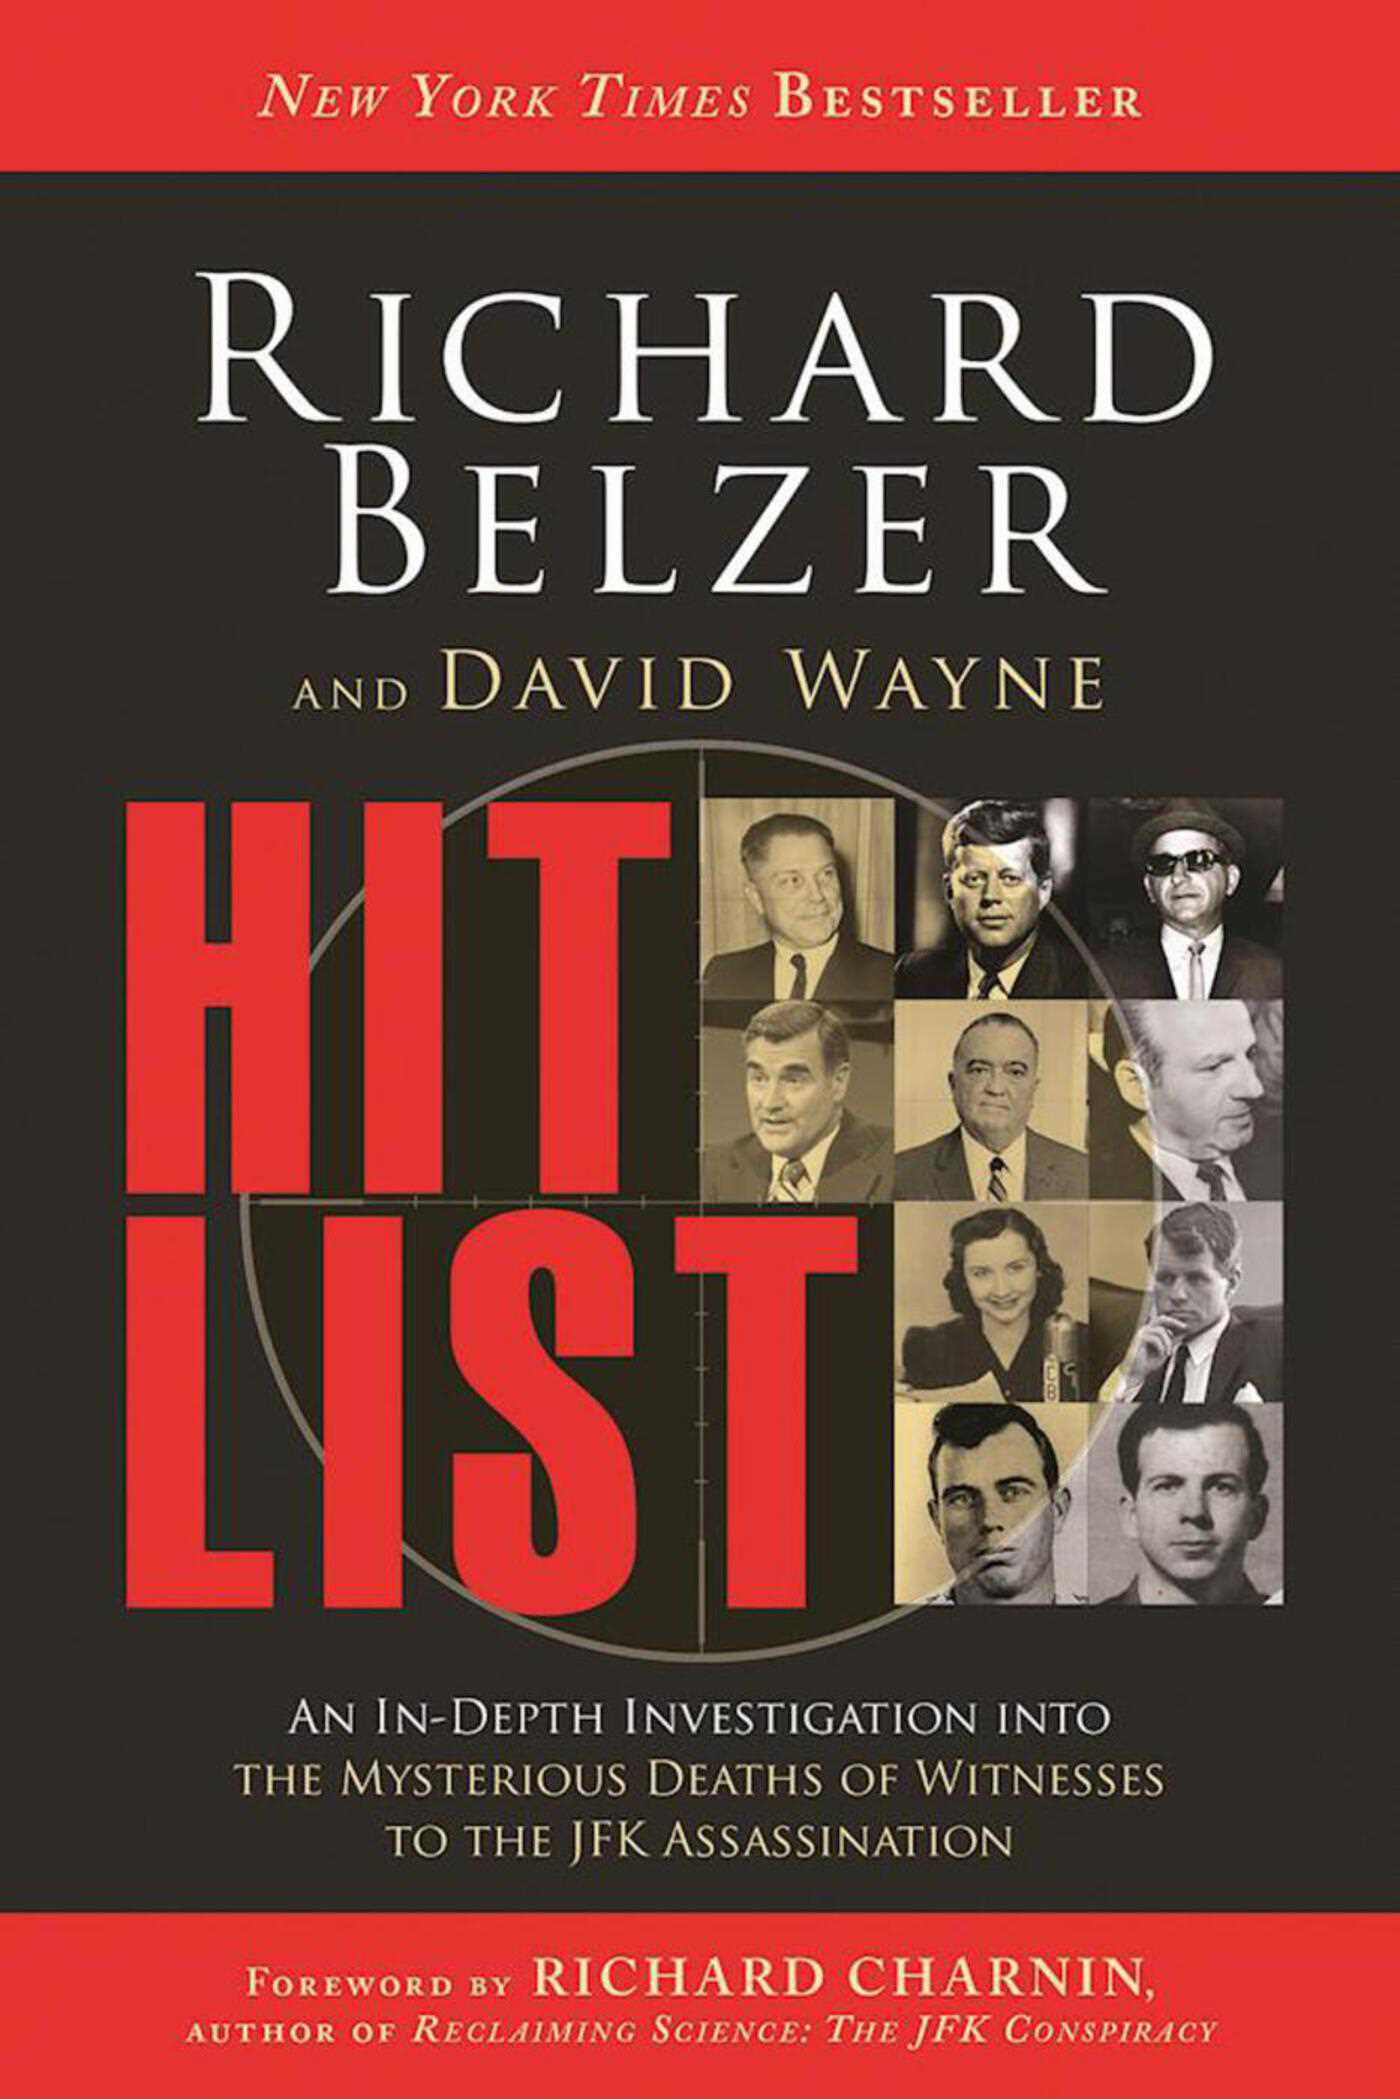 Read Dead Wrong Straight Facts On The Countrys Most Controversial Cover Ups By Richard Belzer